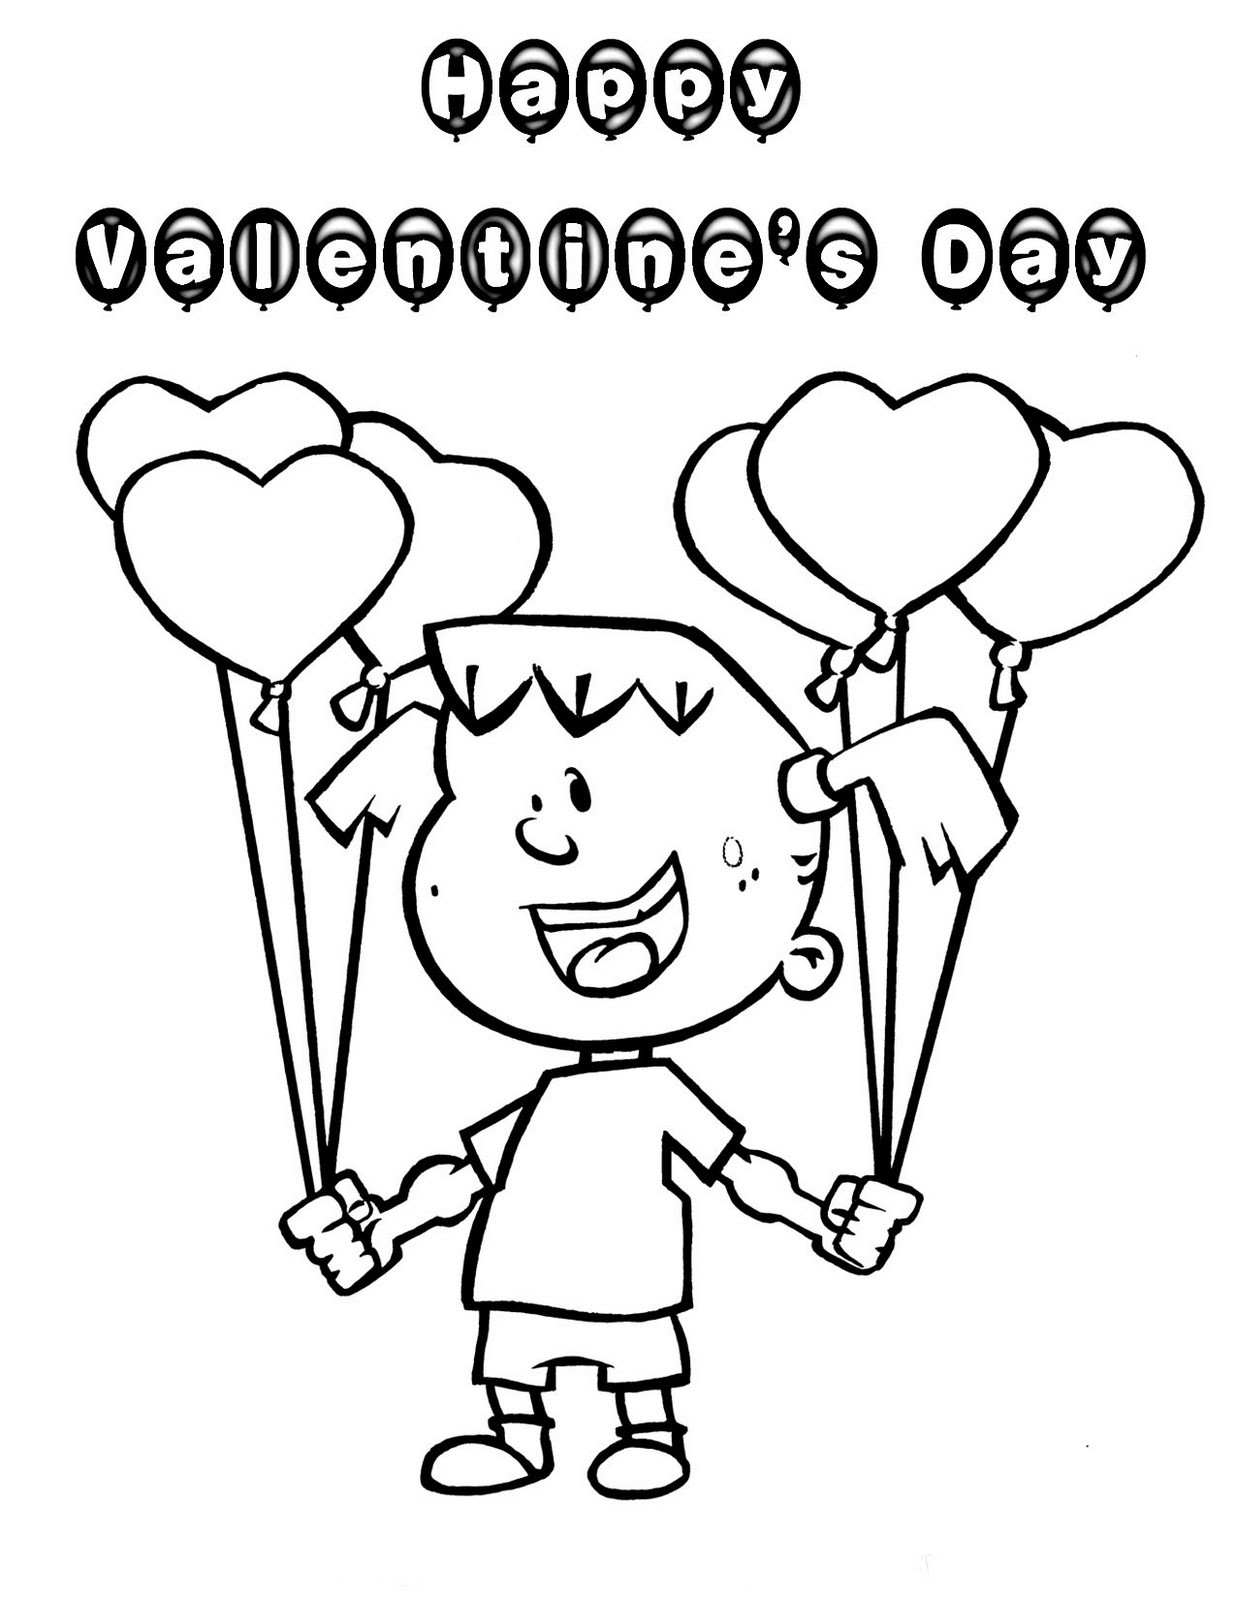 Best ideas about Valentines Coloring Sheets For Girls . Save or Pin Valentine Coloring Pages Best Coloring Pages For Kids Now.